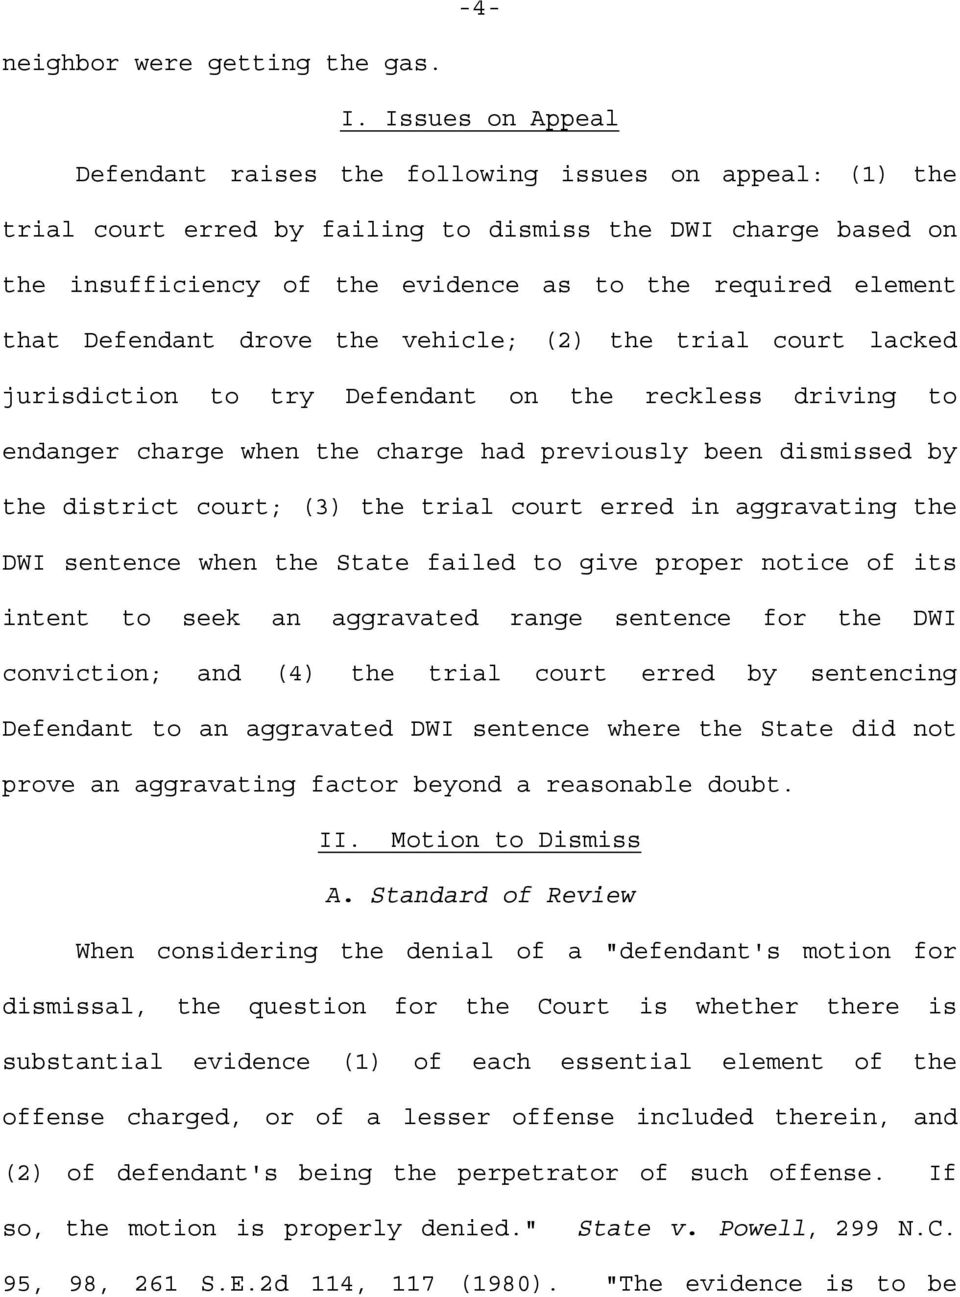 that Defendant drove the vehicle; (2) the trial court lacked jurisdiction to try Defendant on the reckless driving to endanger charge when the charge had previously been dismissed by the district